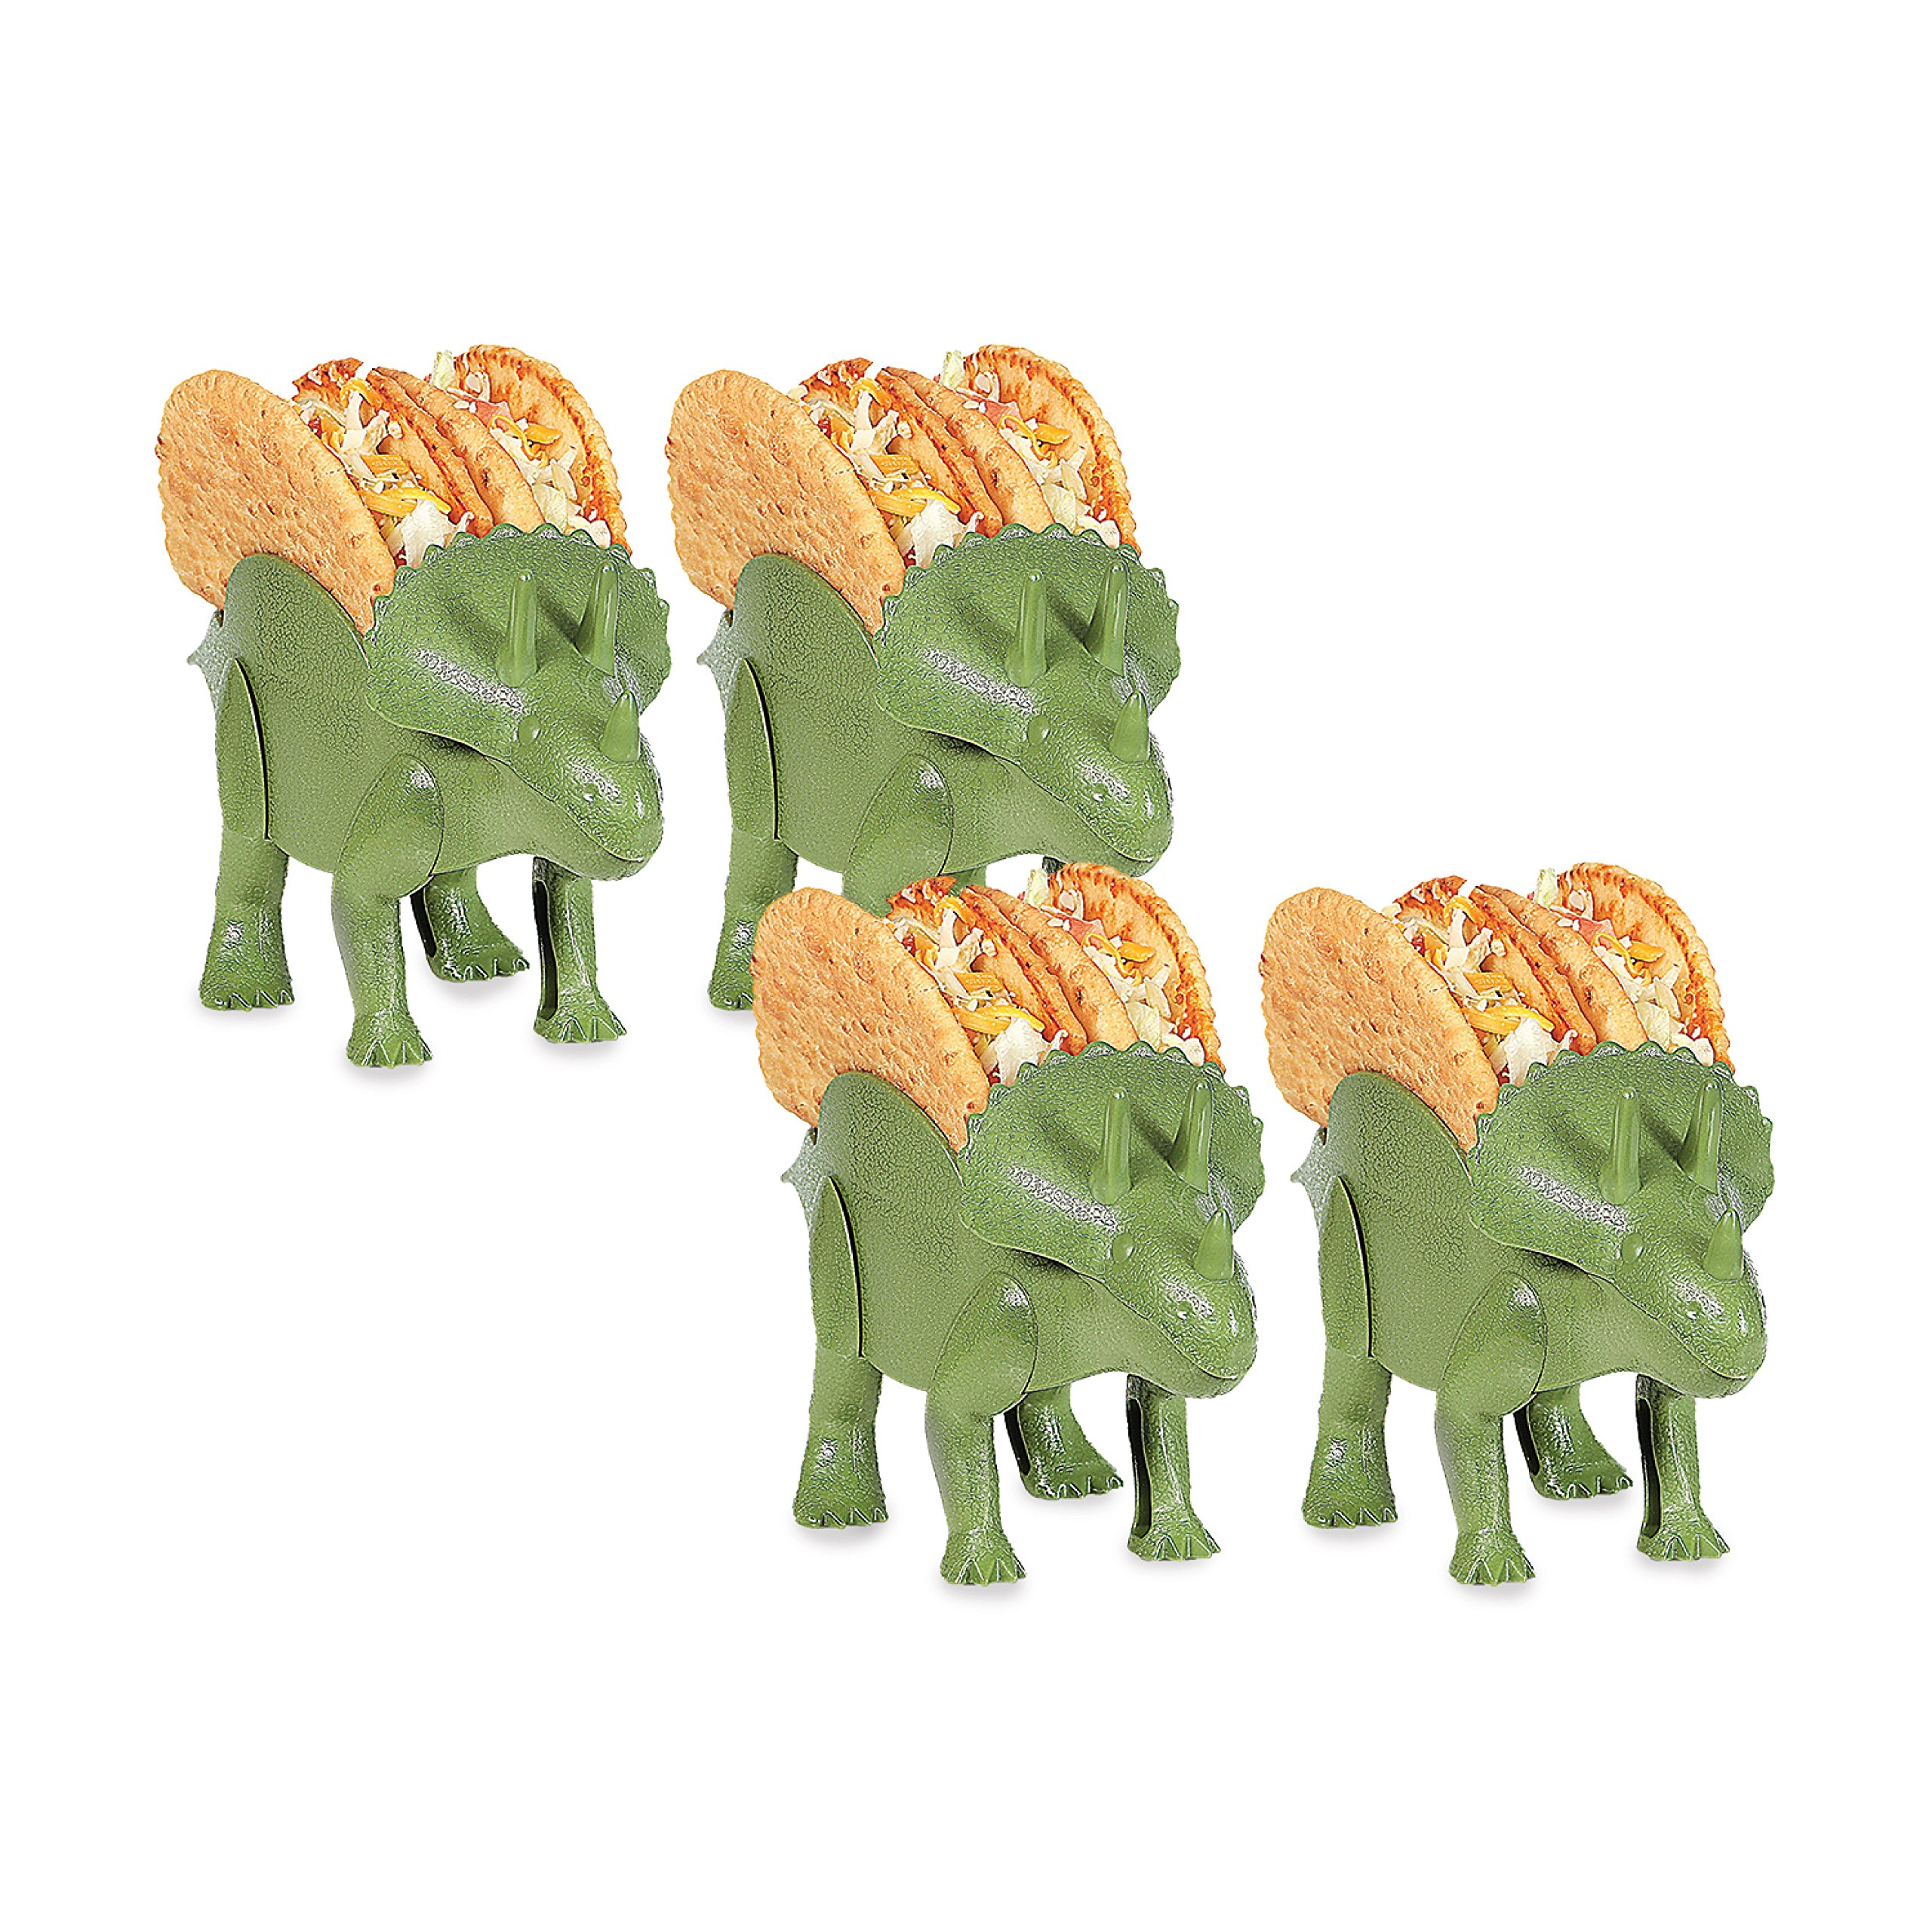 4-Pack Dino Taco Holder, Novelty Dino Taco Holders for Kids, 10''x5.5 Triceratops Taco Holder, Fun Taco Holders for #TacoTuesday, Green Taco Triceratops, Dinosaur Taco Holder for Indoor and Outdoor Pic